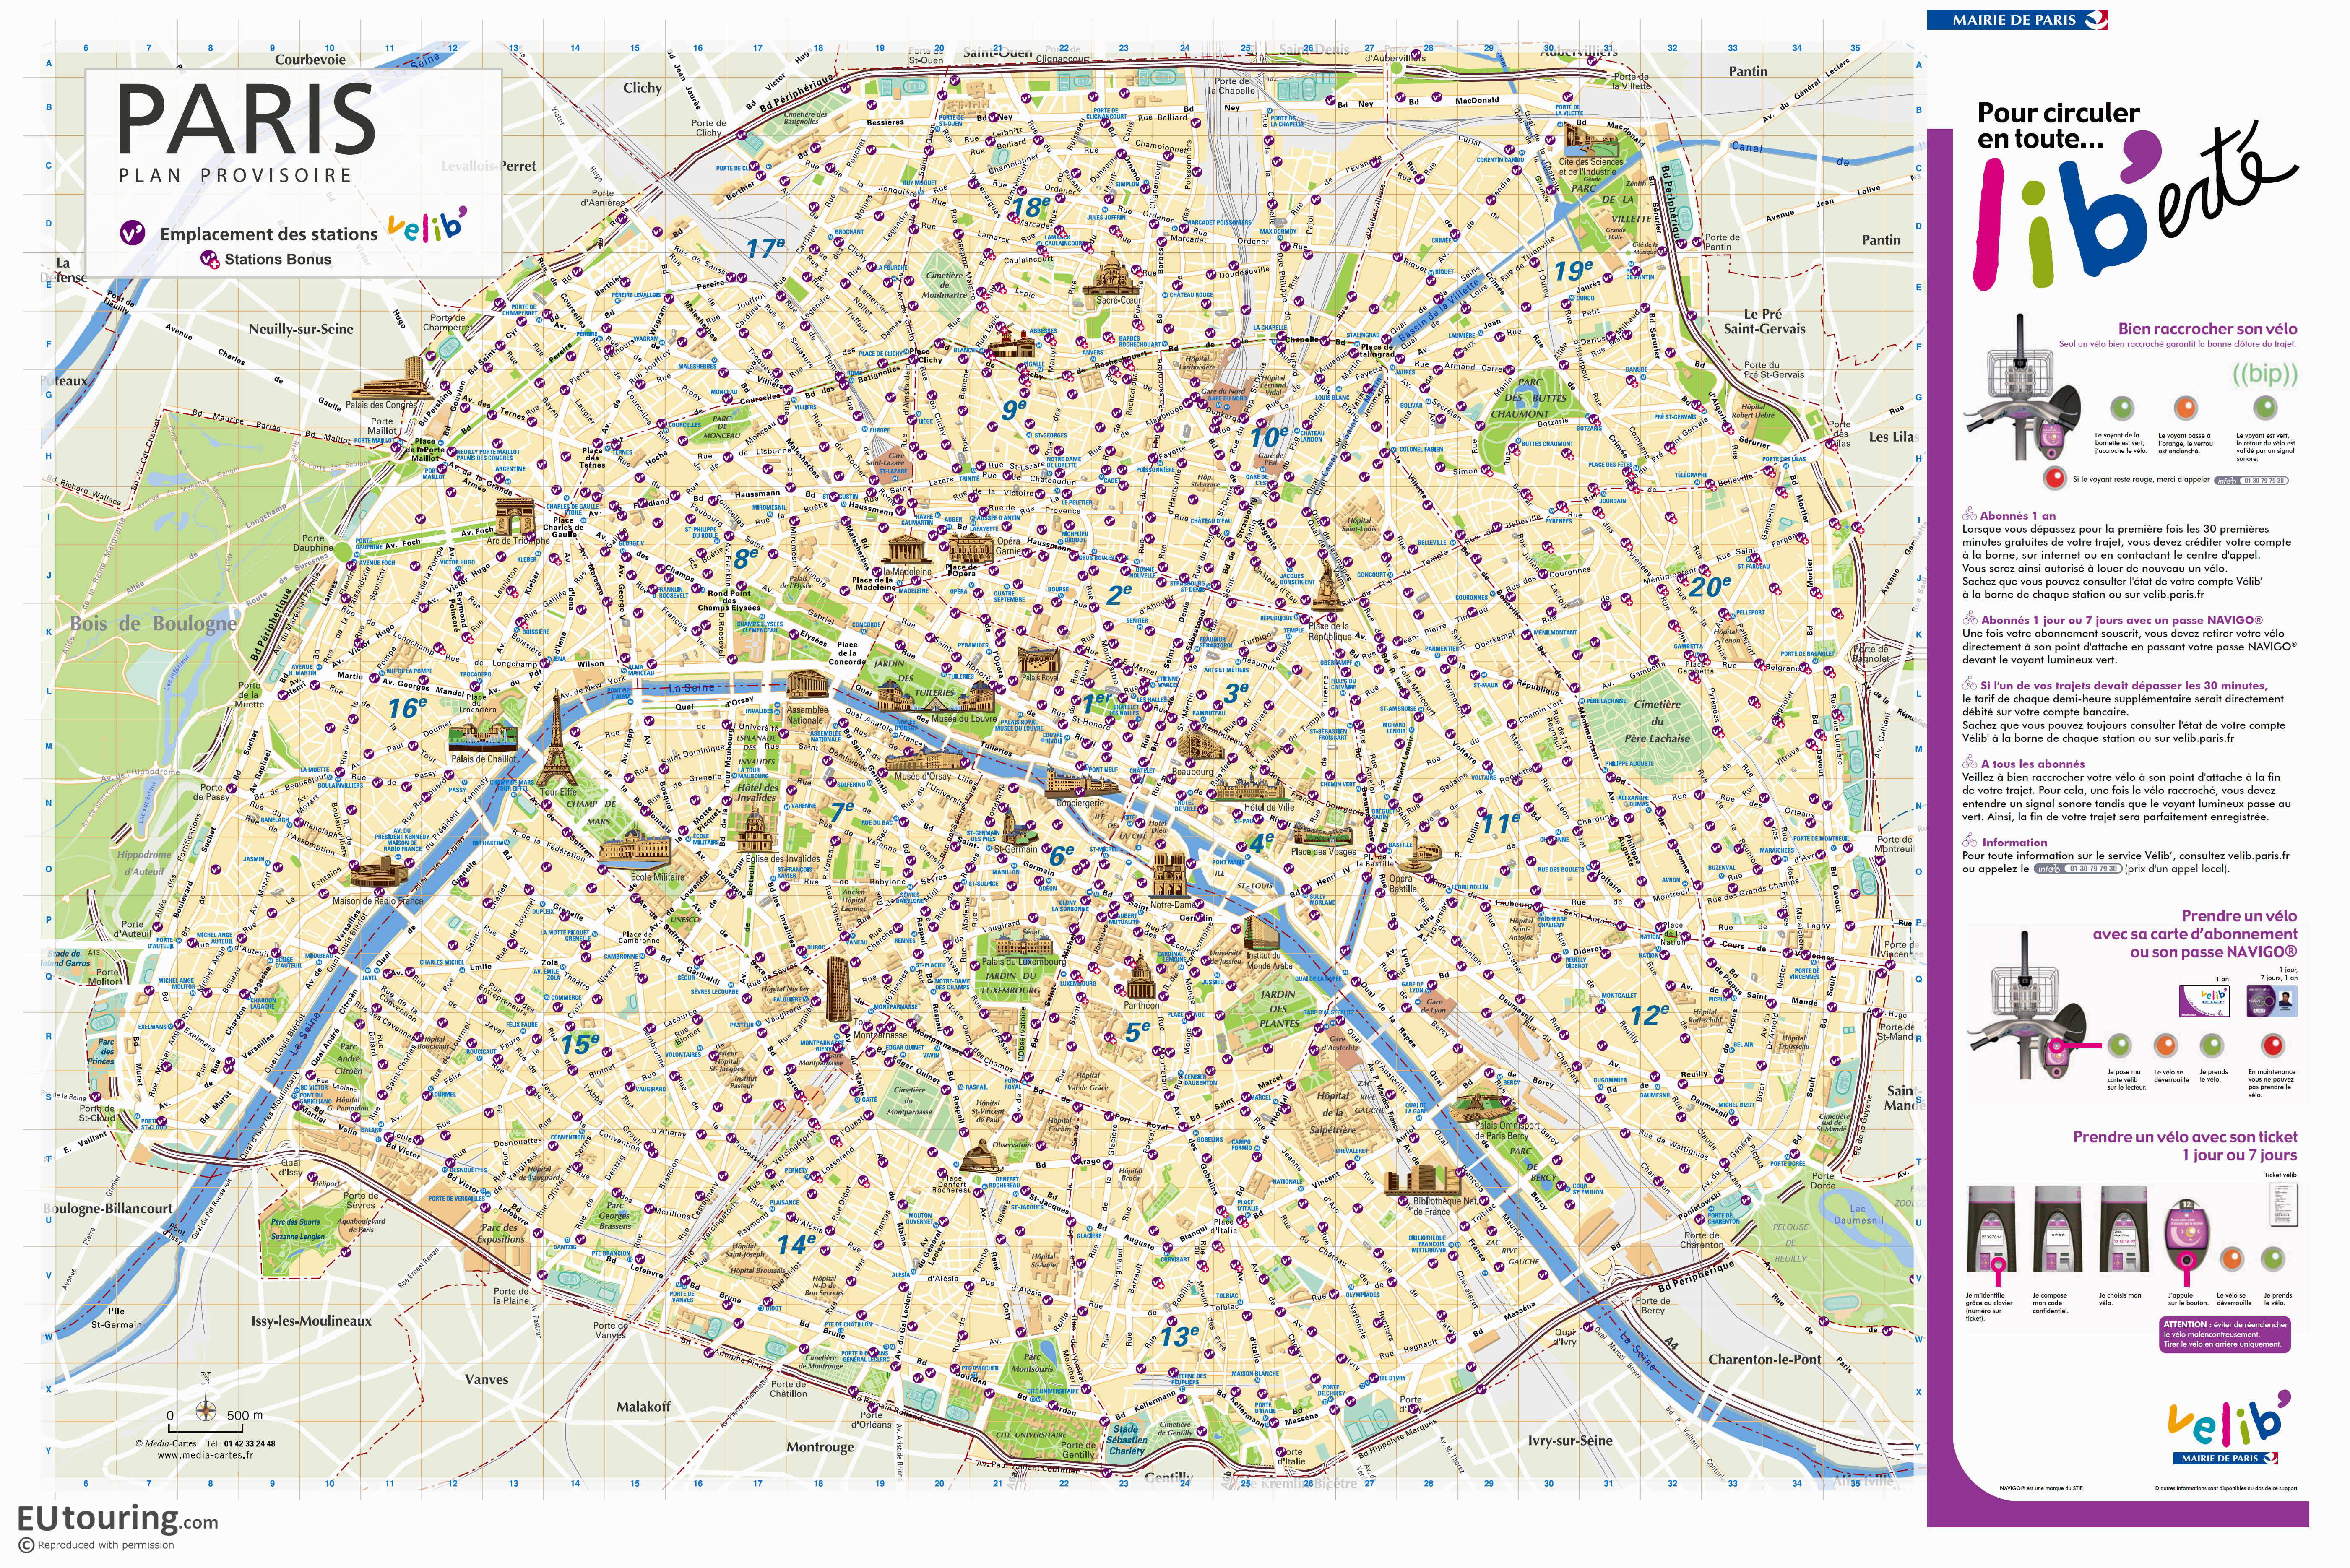 Paris Velib Station Maps In Pdf And Image File Formats